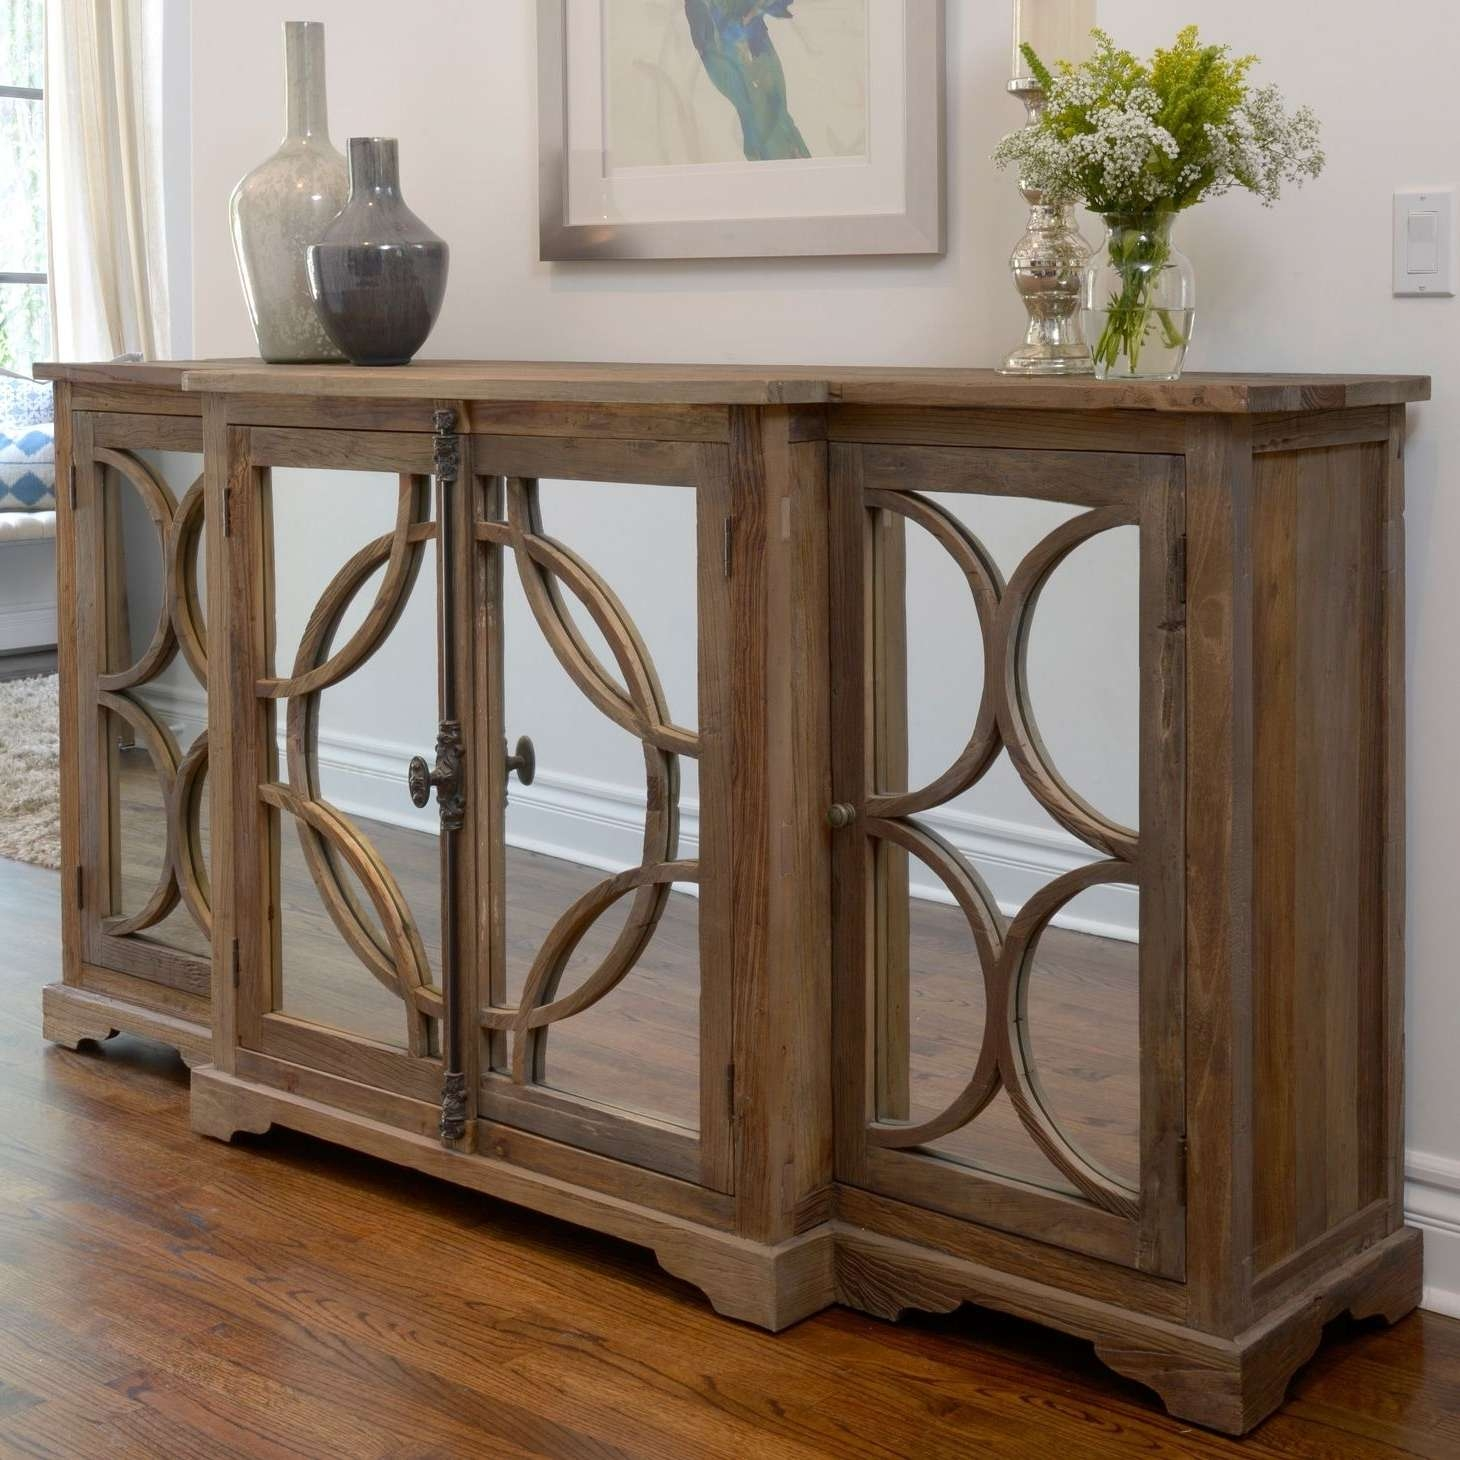 Powell Mirrored Buffet — New Home Design : Mirrored Buffet For In Mirrored Sideboards And Buffets (View 15 of 20)